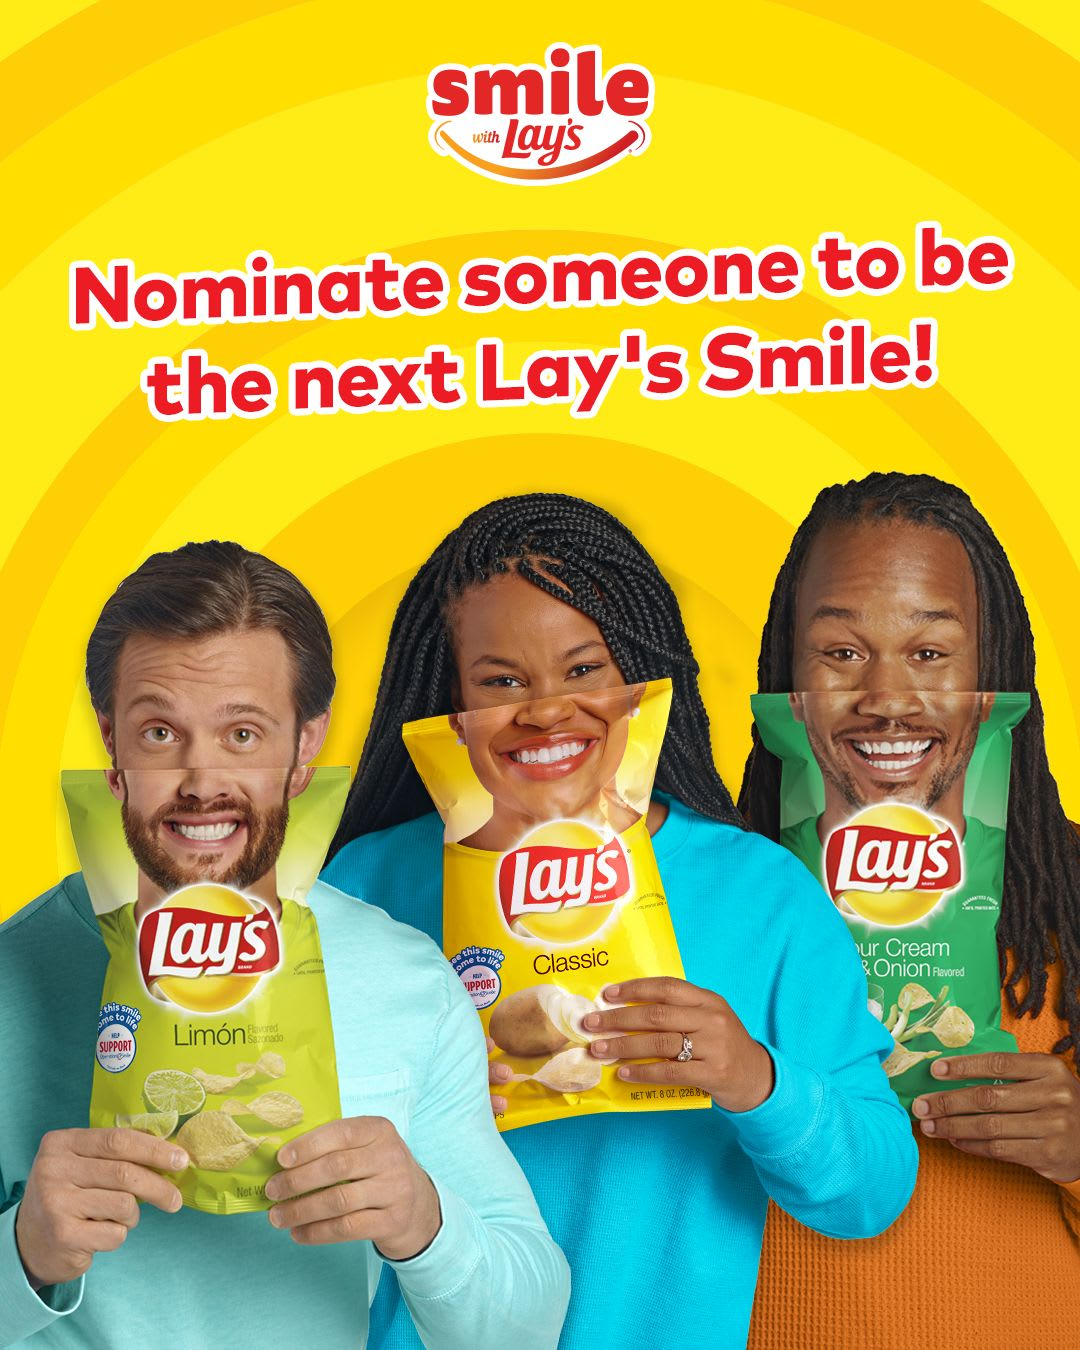 Lay's Smiles, Lay's New Flavors